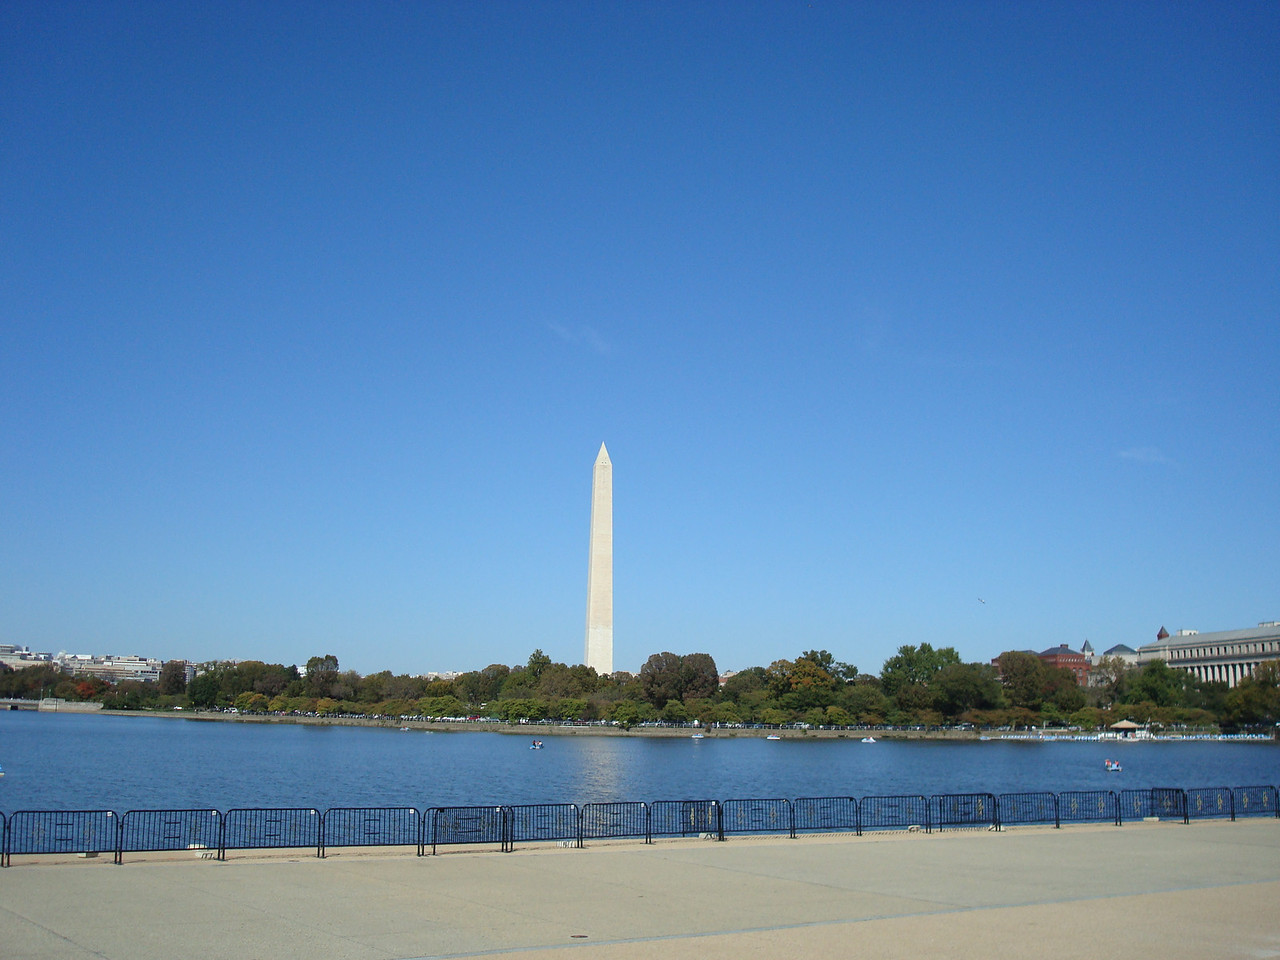 View from Jefferson Memorial